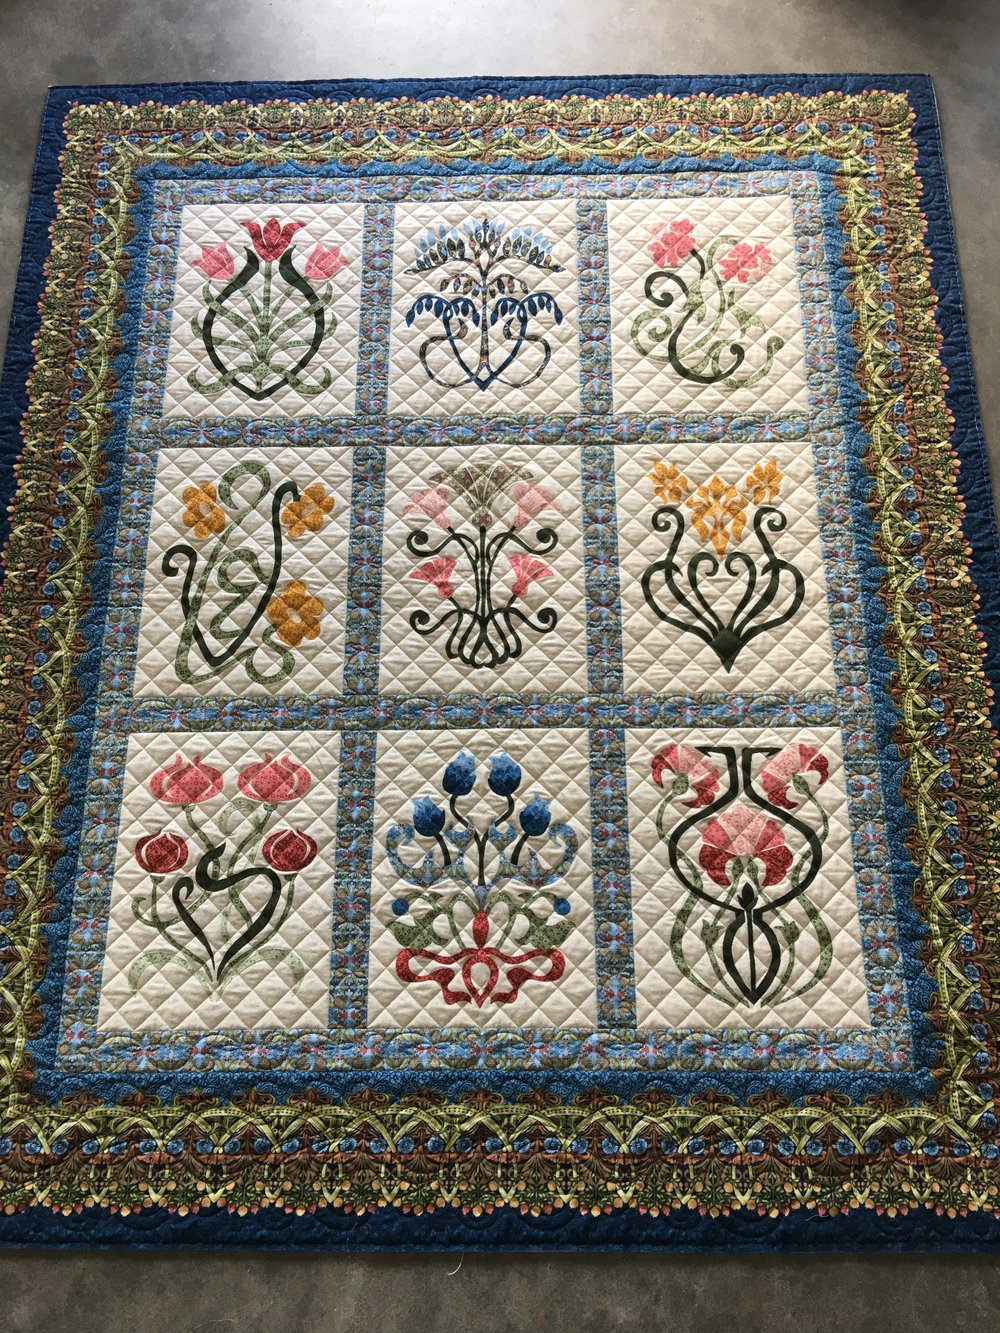 Repeated block design with separate sashing & border designs